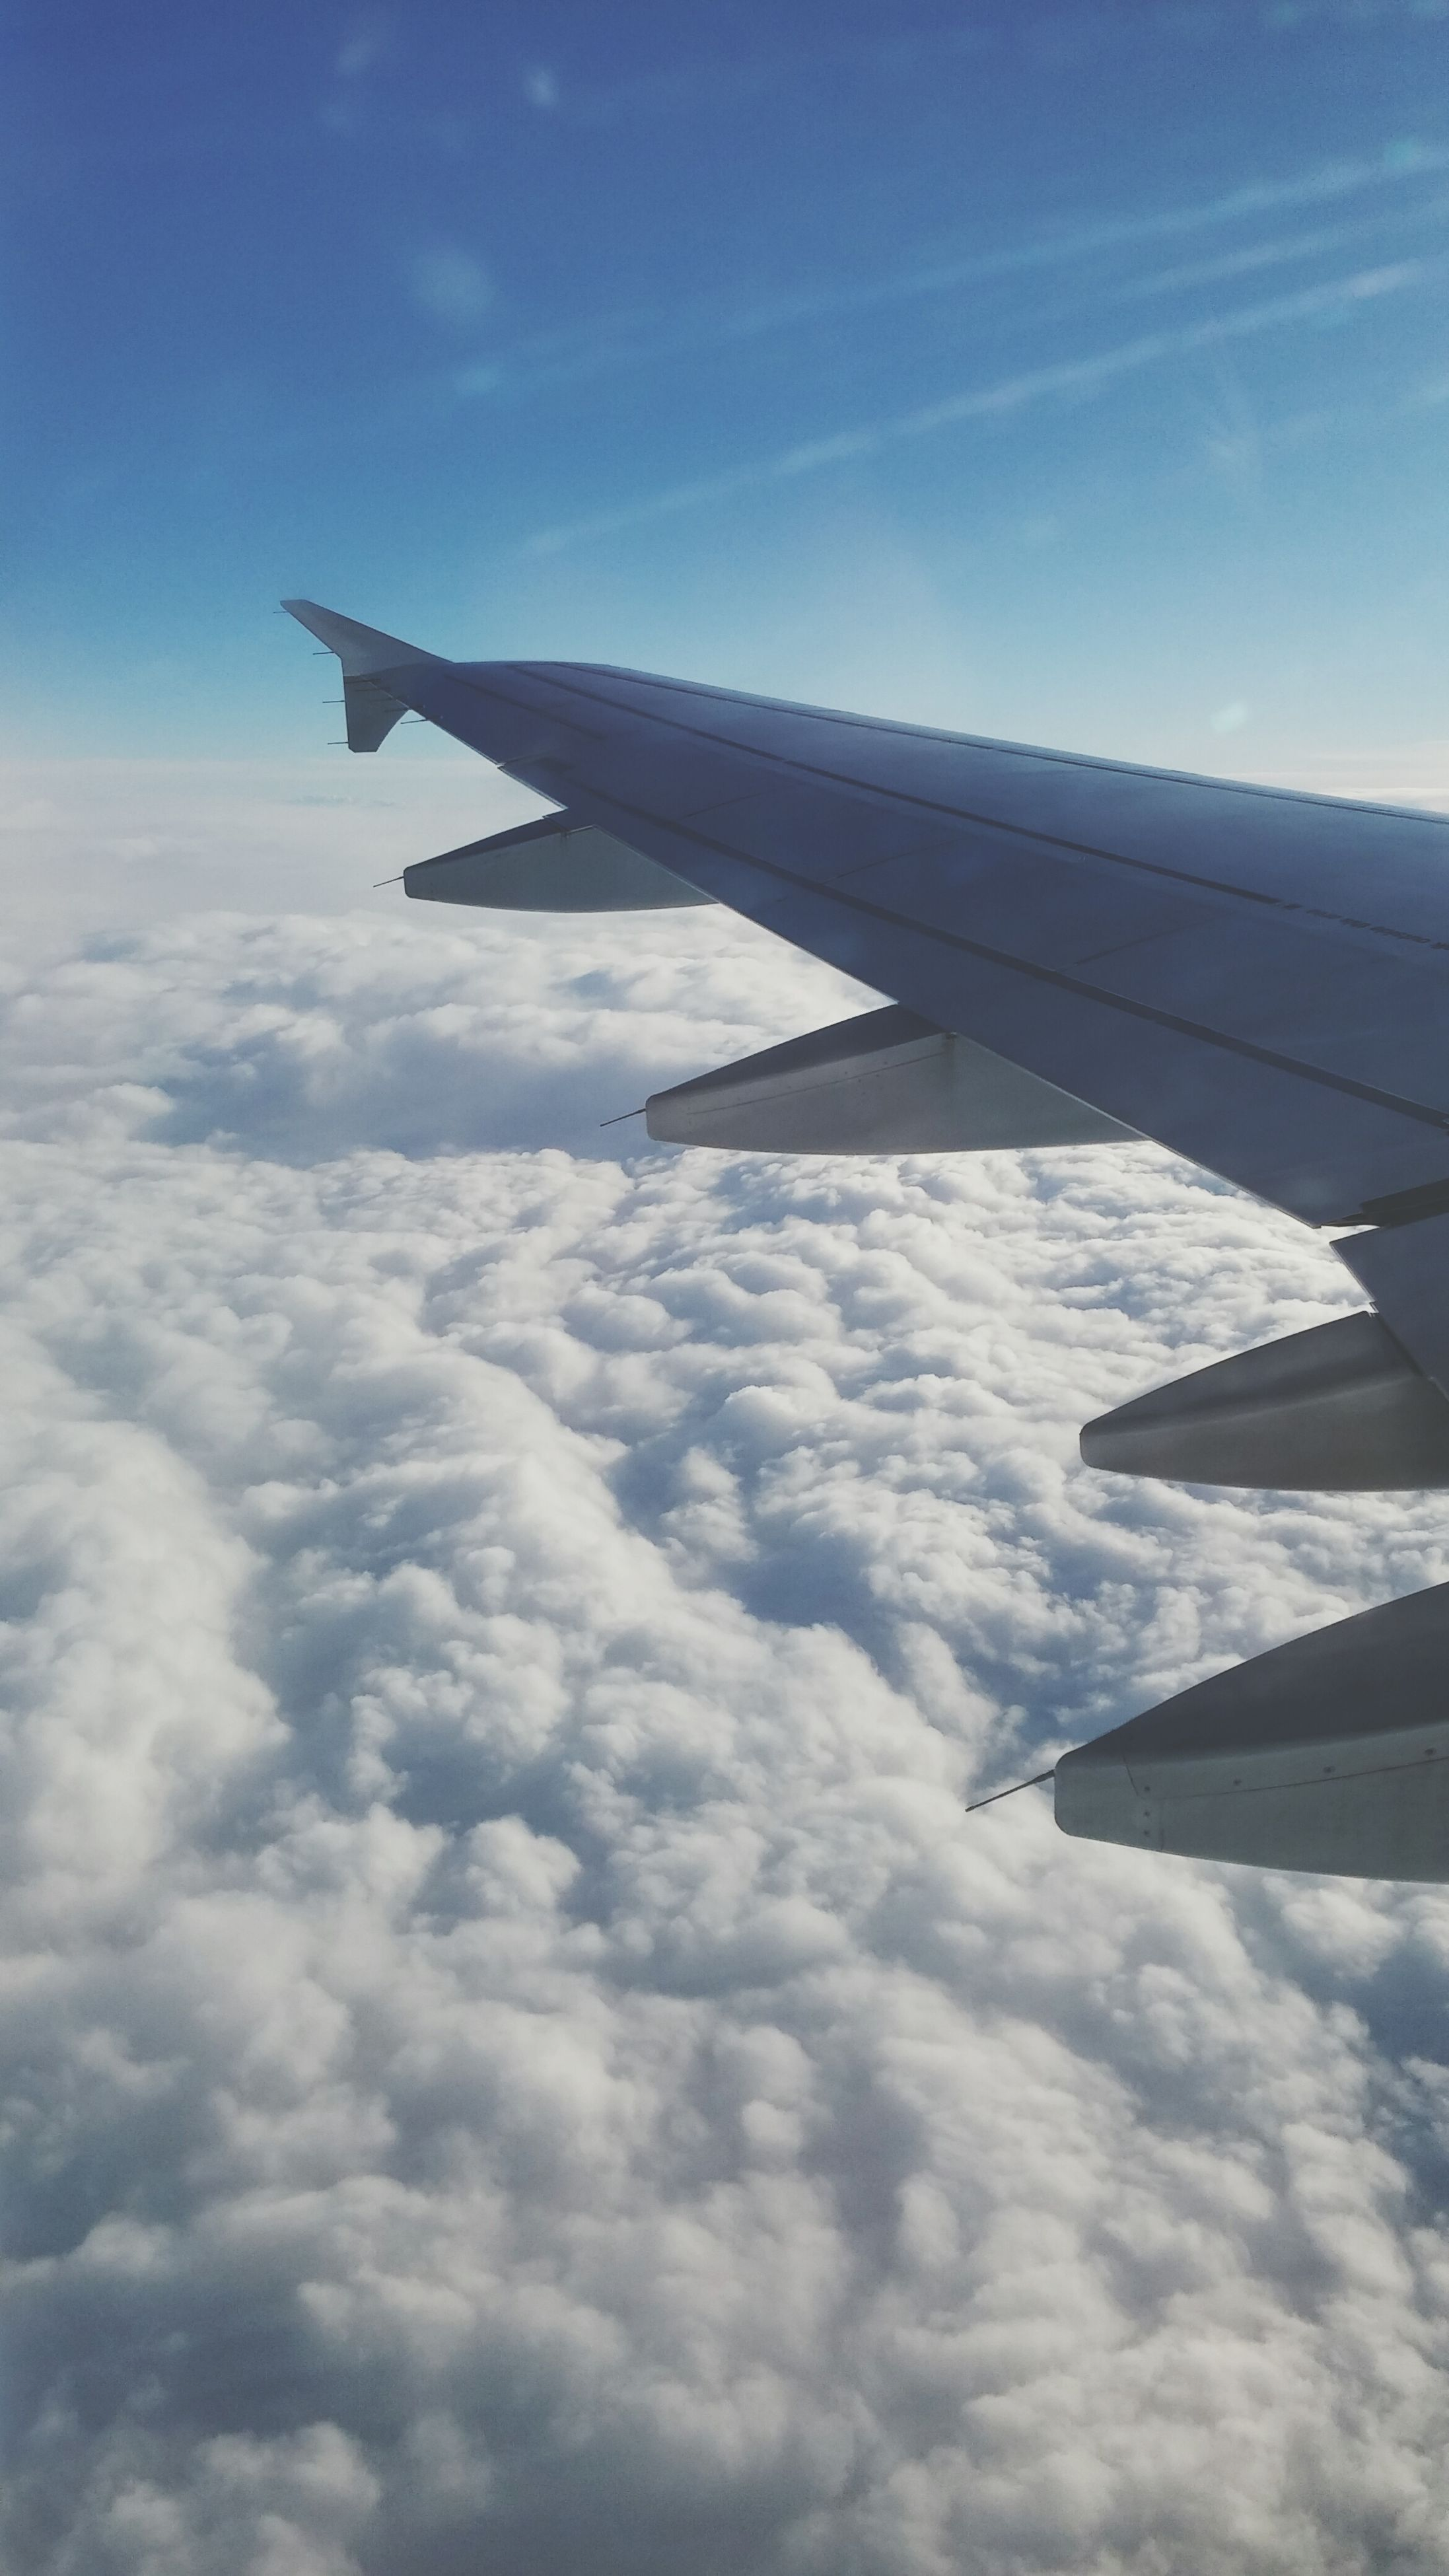 airplane, aircraft wing, air vehicle, flying, transportation, mode of transport, sky, part of, cloud - sky, mid-air, cropped, travel, aerial view, journey, on the move, public transportation, blue, cloud, cloudscape, airplane wing